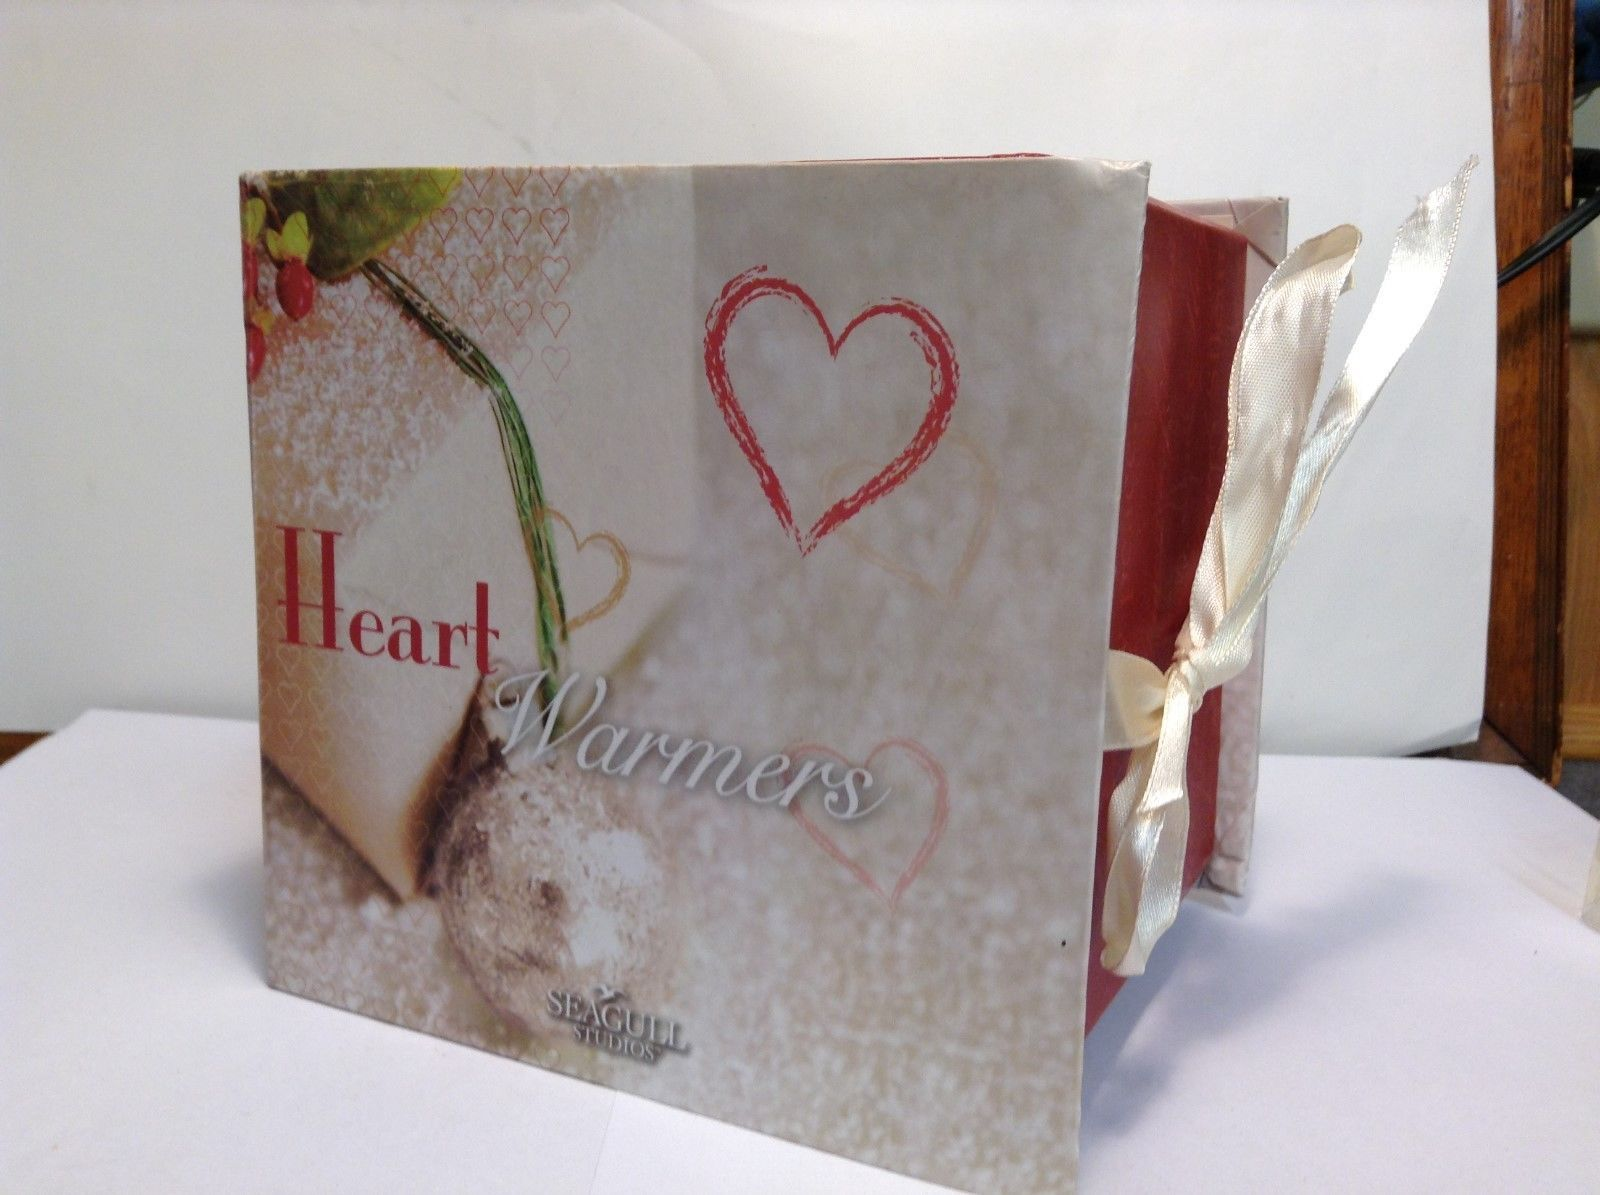 NEW Seagull Studios Heart Warmers Candle Holder w Tablet/Msg Tablet